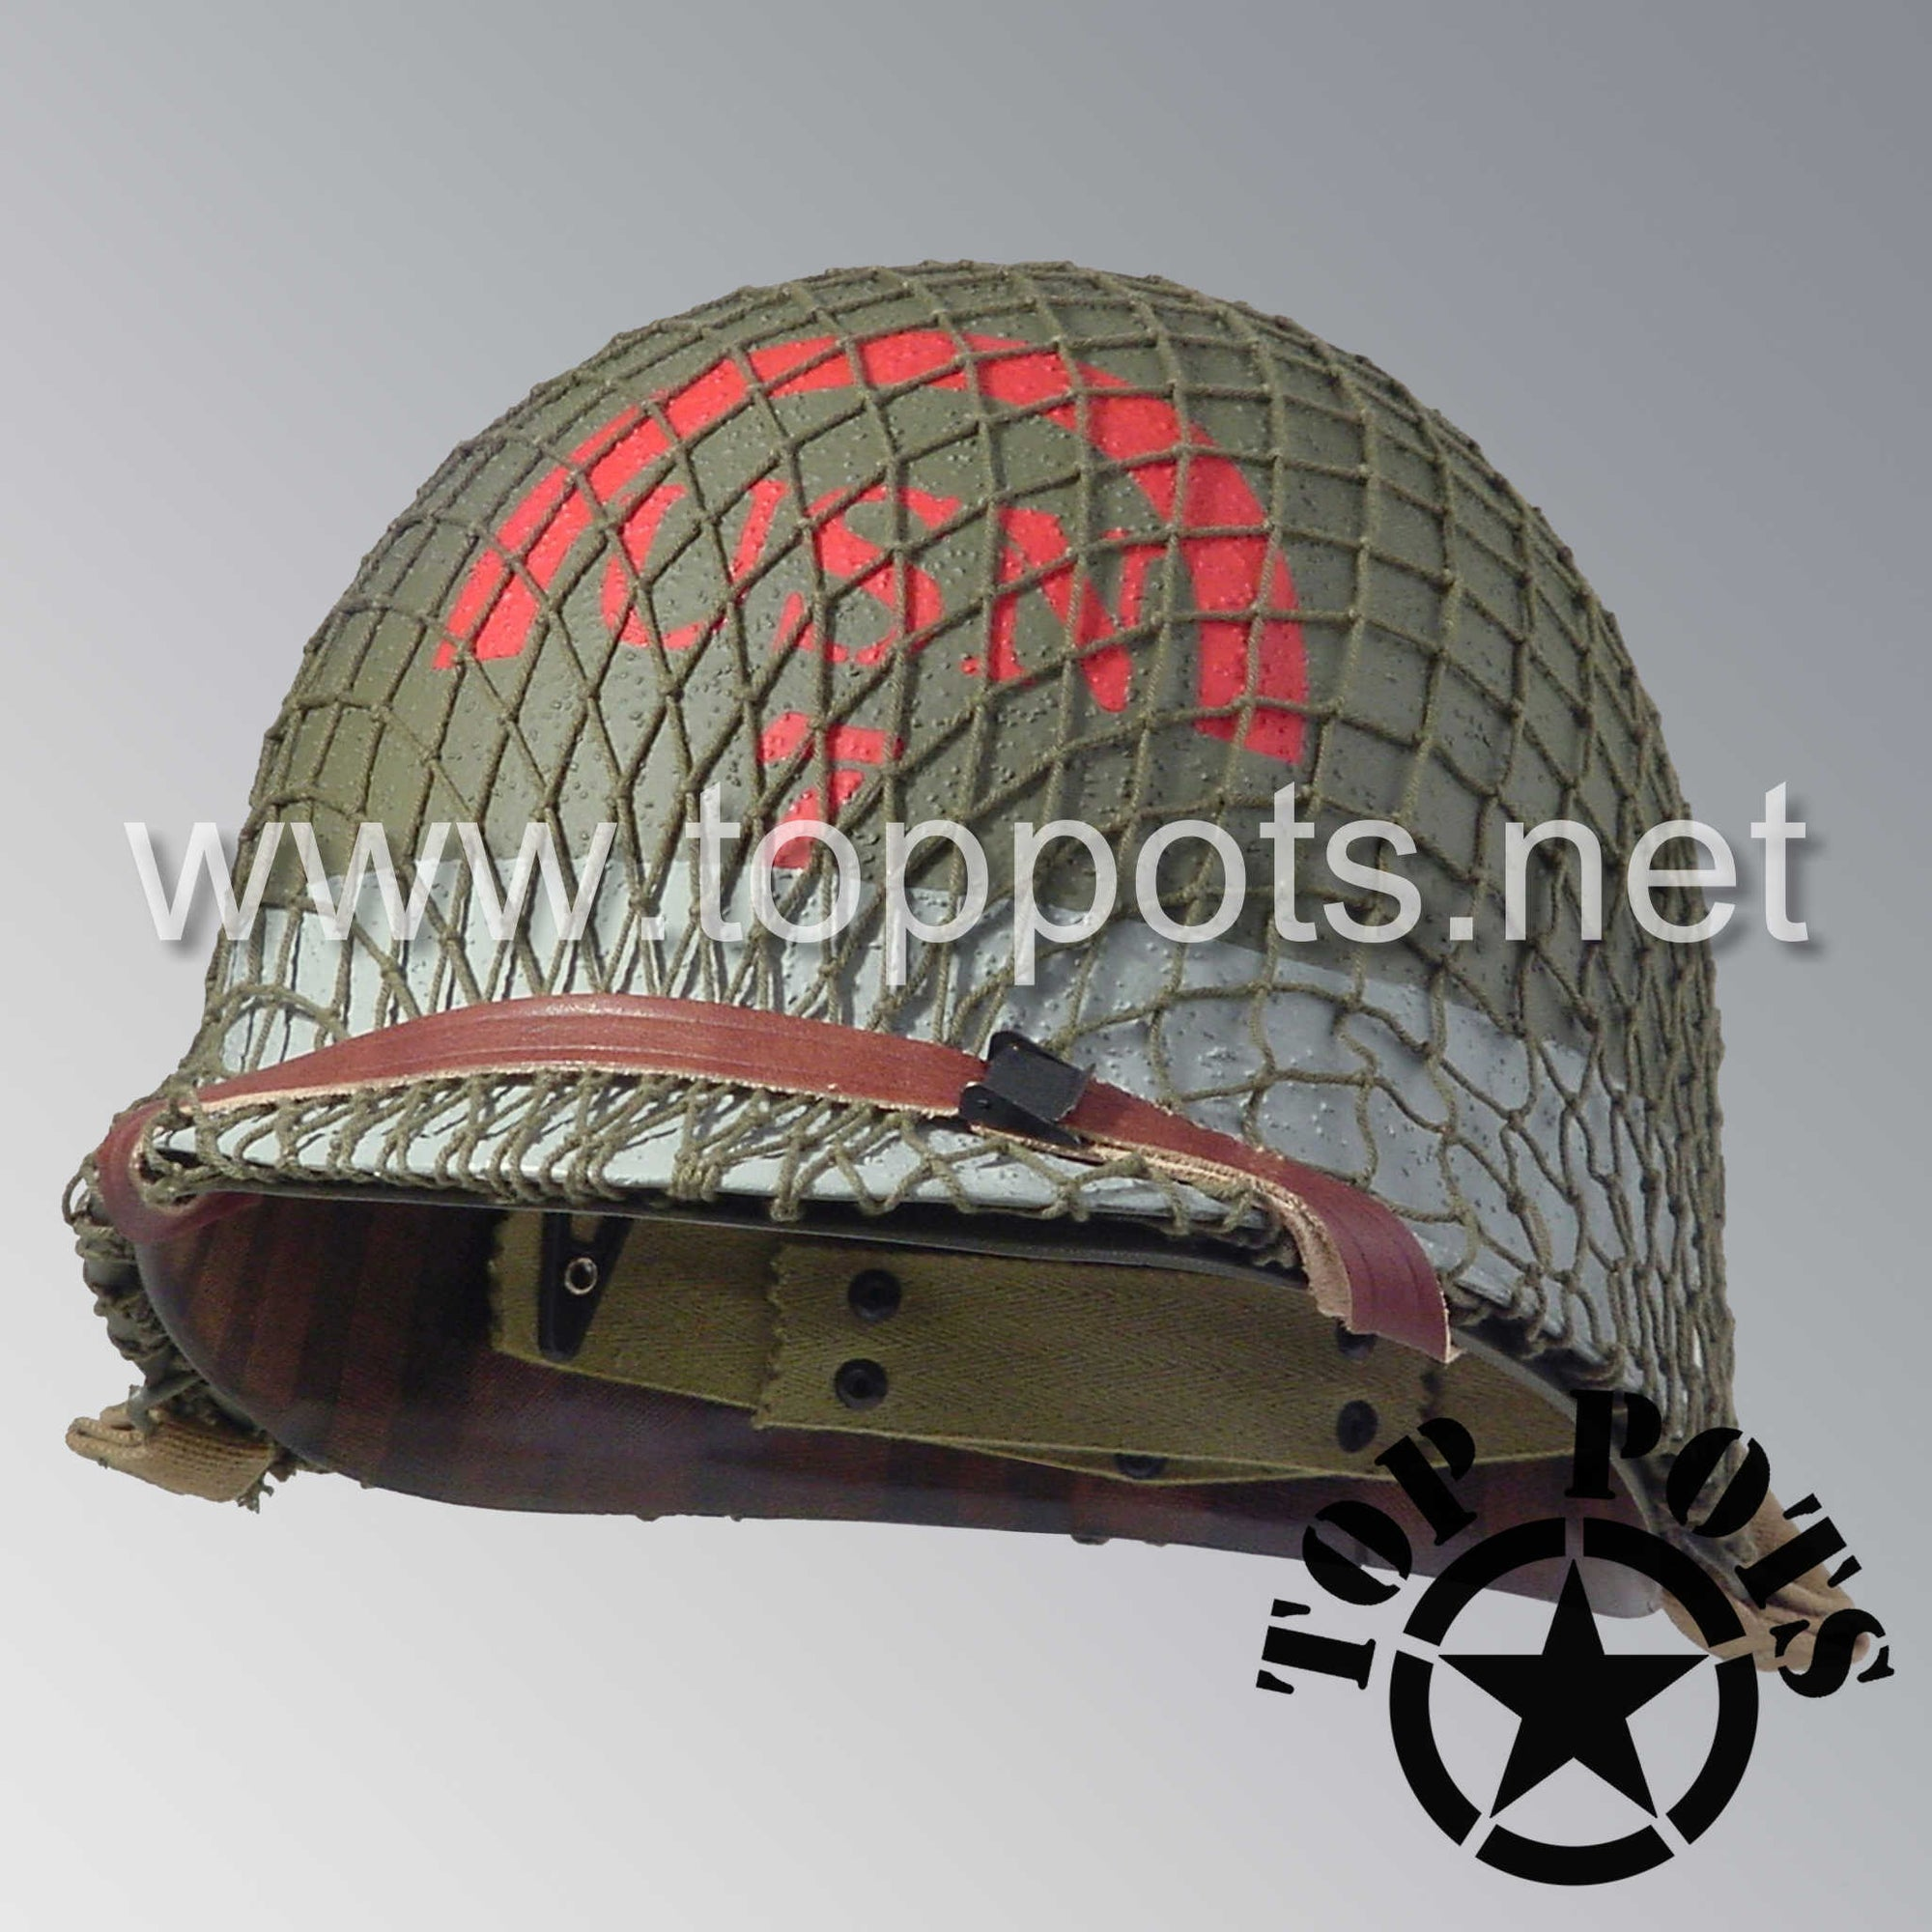 Image 1 of WWII US Navy Restored Original M1 Infantry Helmet Swivel Bale Shell and Liner with 7th Naval Beach Battalion USN Emblem with OD 7 Net